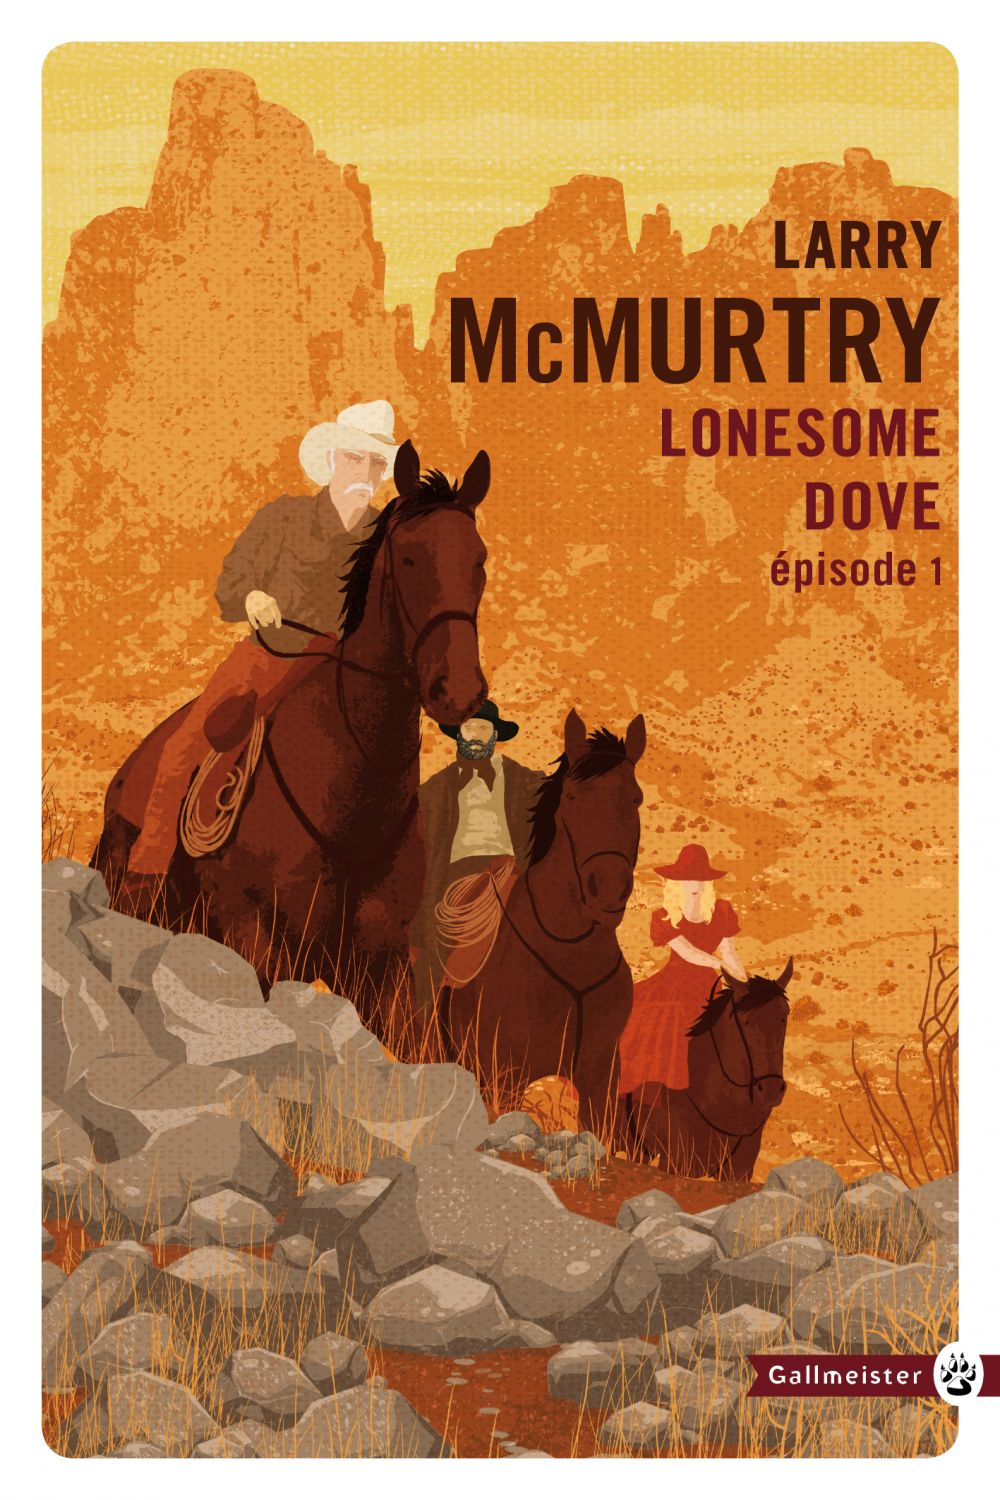 Lonesome dove 1 | McMurtry, Larry